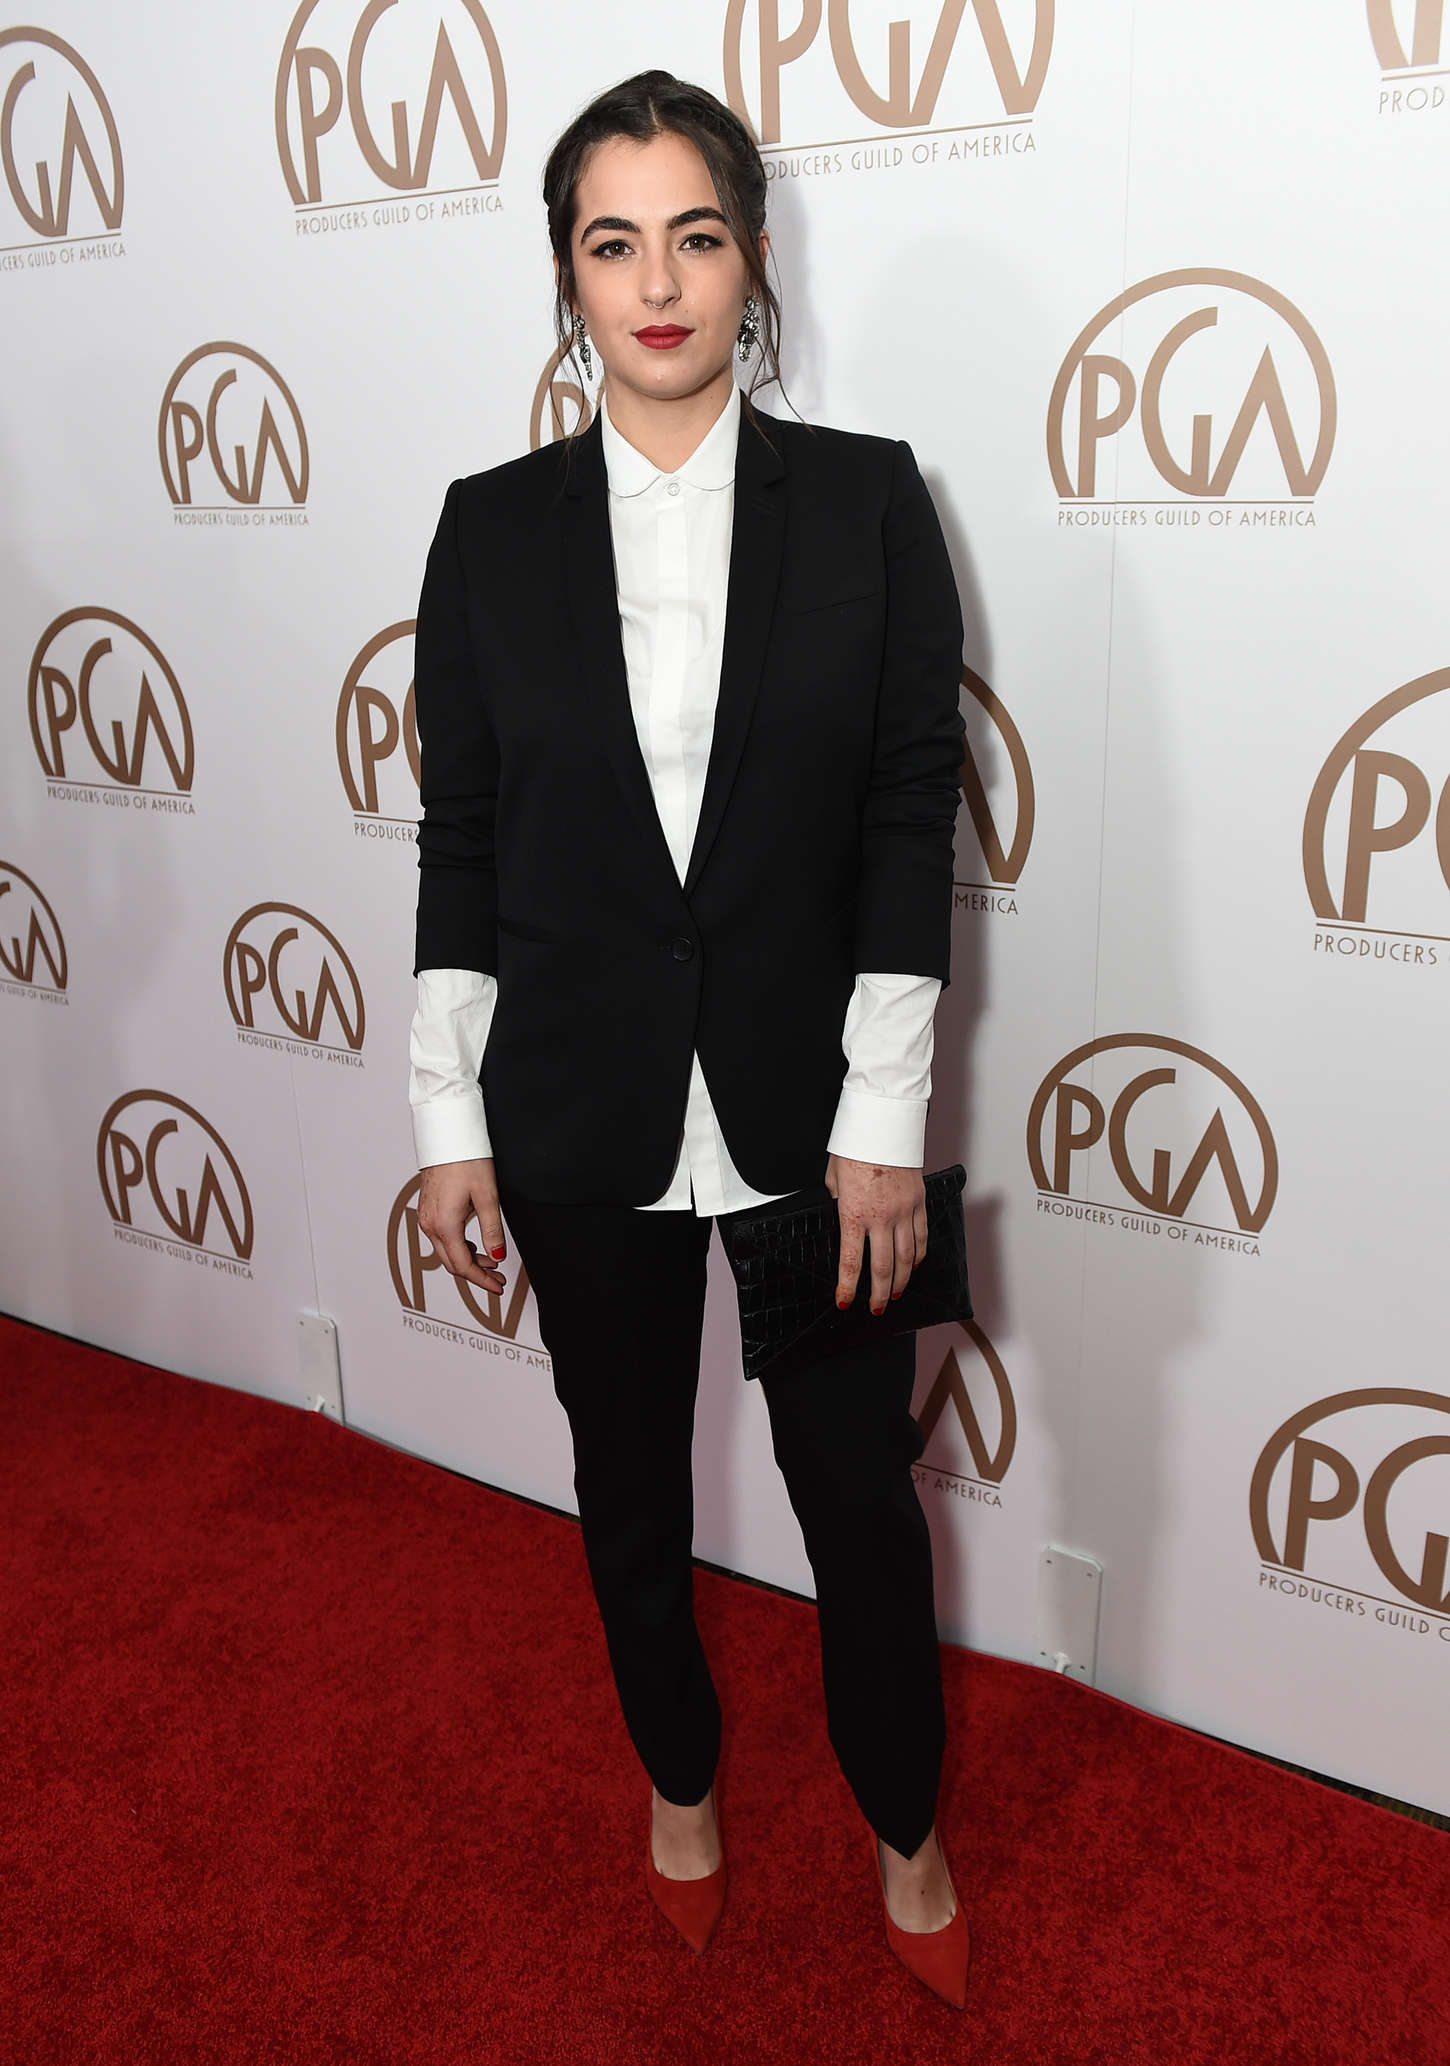 Alanna Masterson Annual Producers Guild Of America Awards in Los Angeles